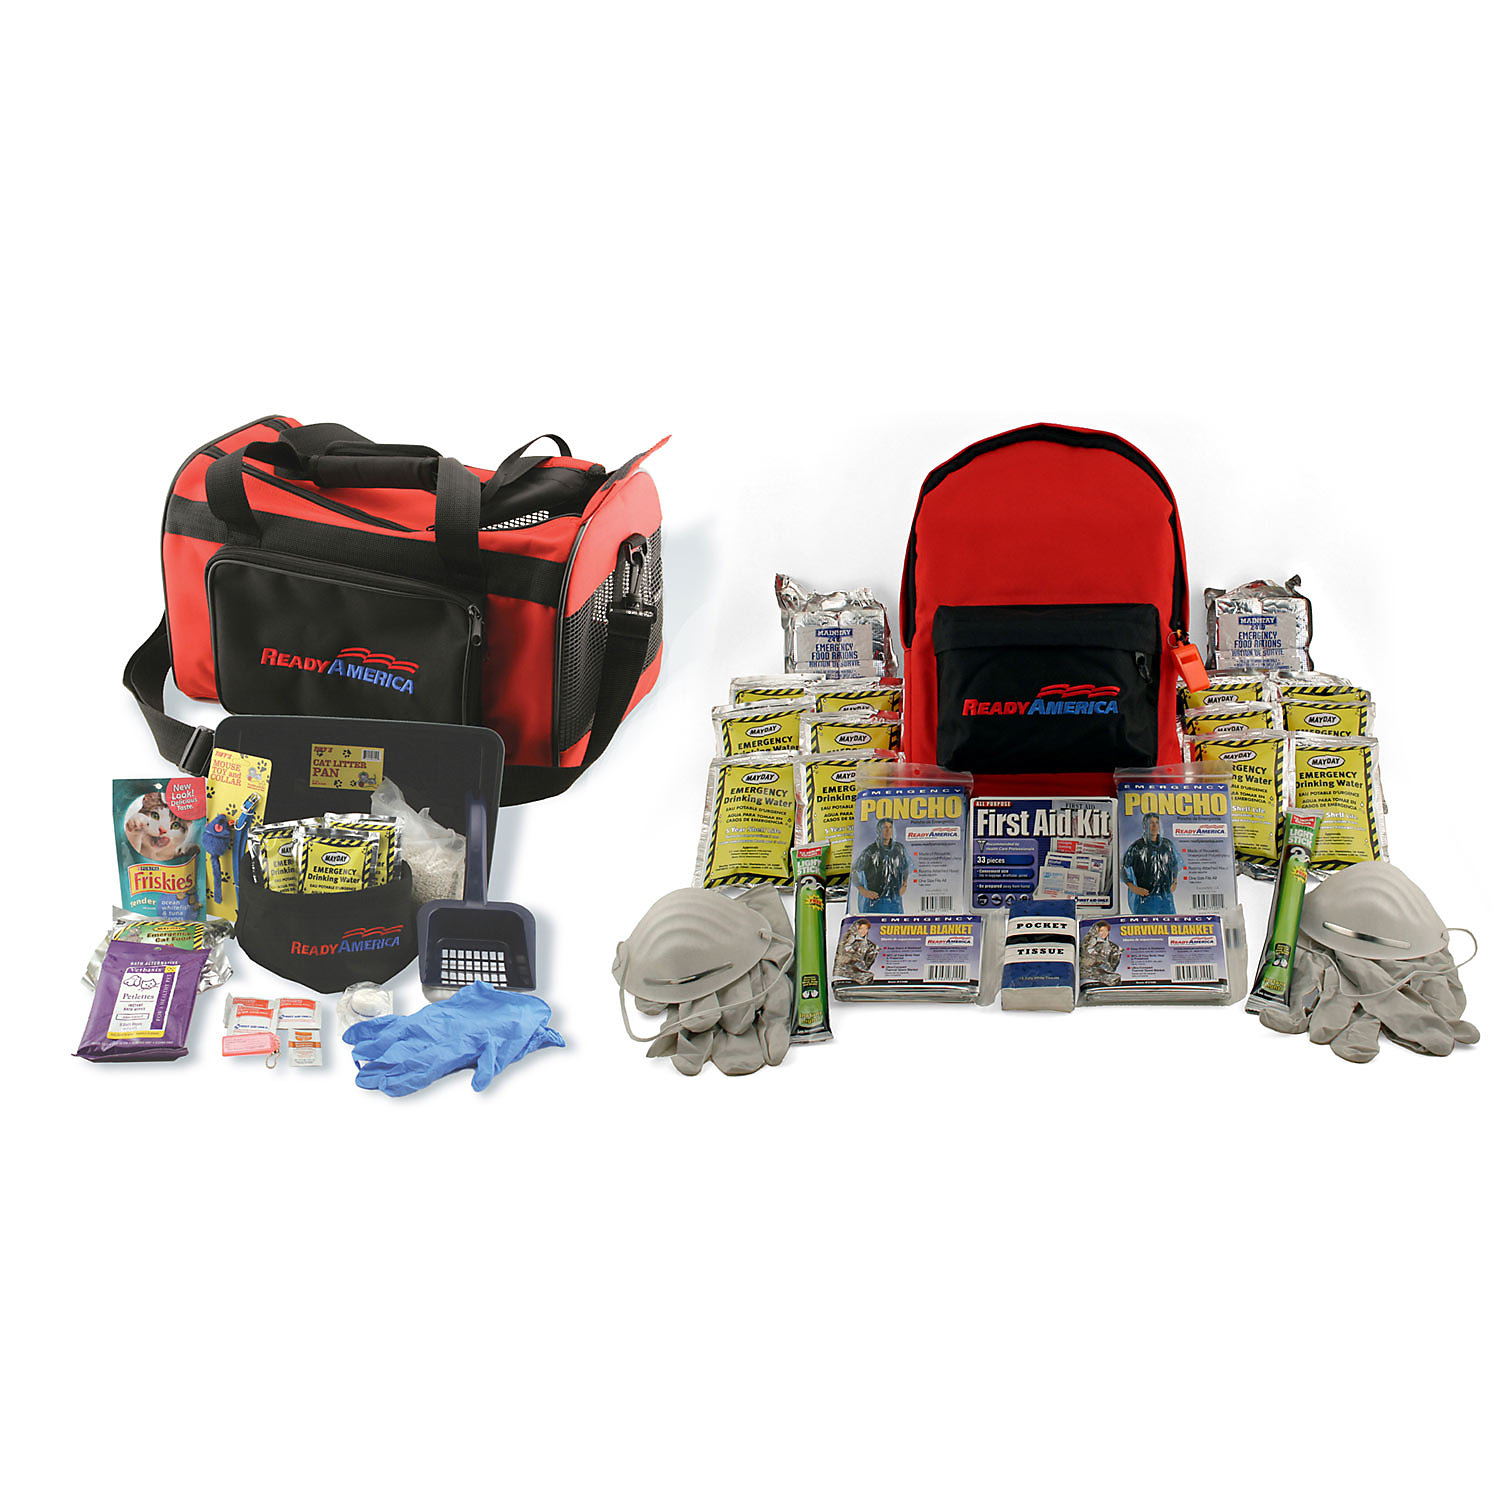 Ready America Grab n Go Cat and Two Person 3 Day Emergency Kit